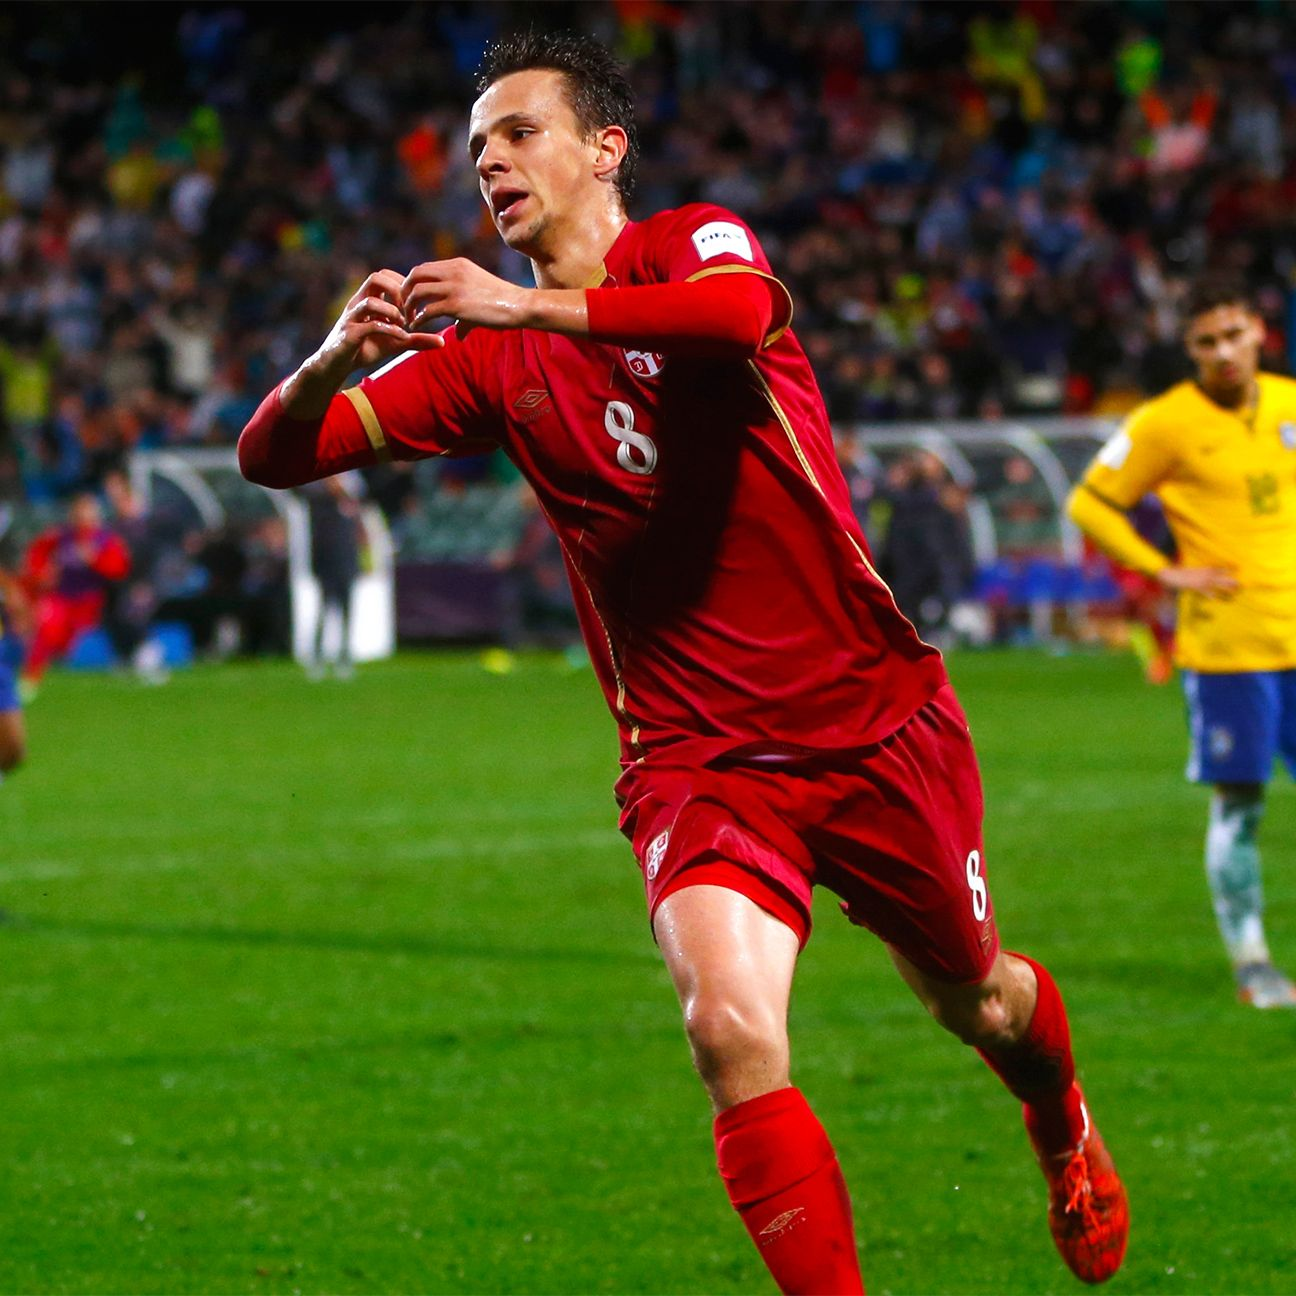 Nemanja Maksimovic of Kazakh side FC Astana scored the extra-time winner for Serbia against Brazil.